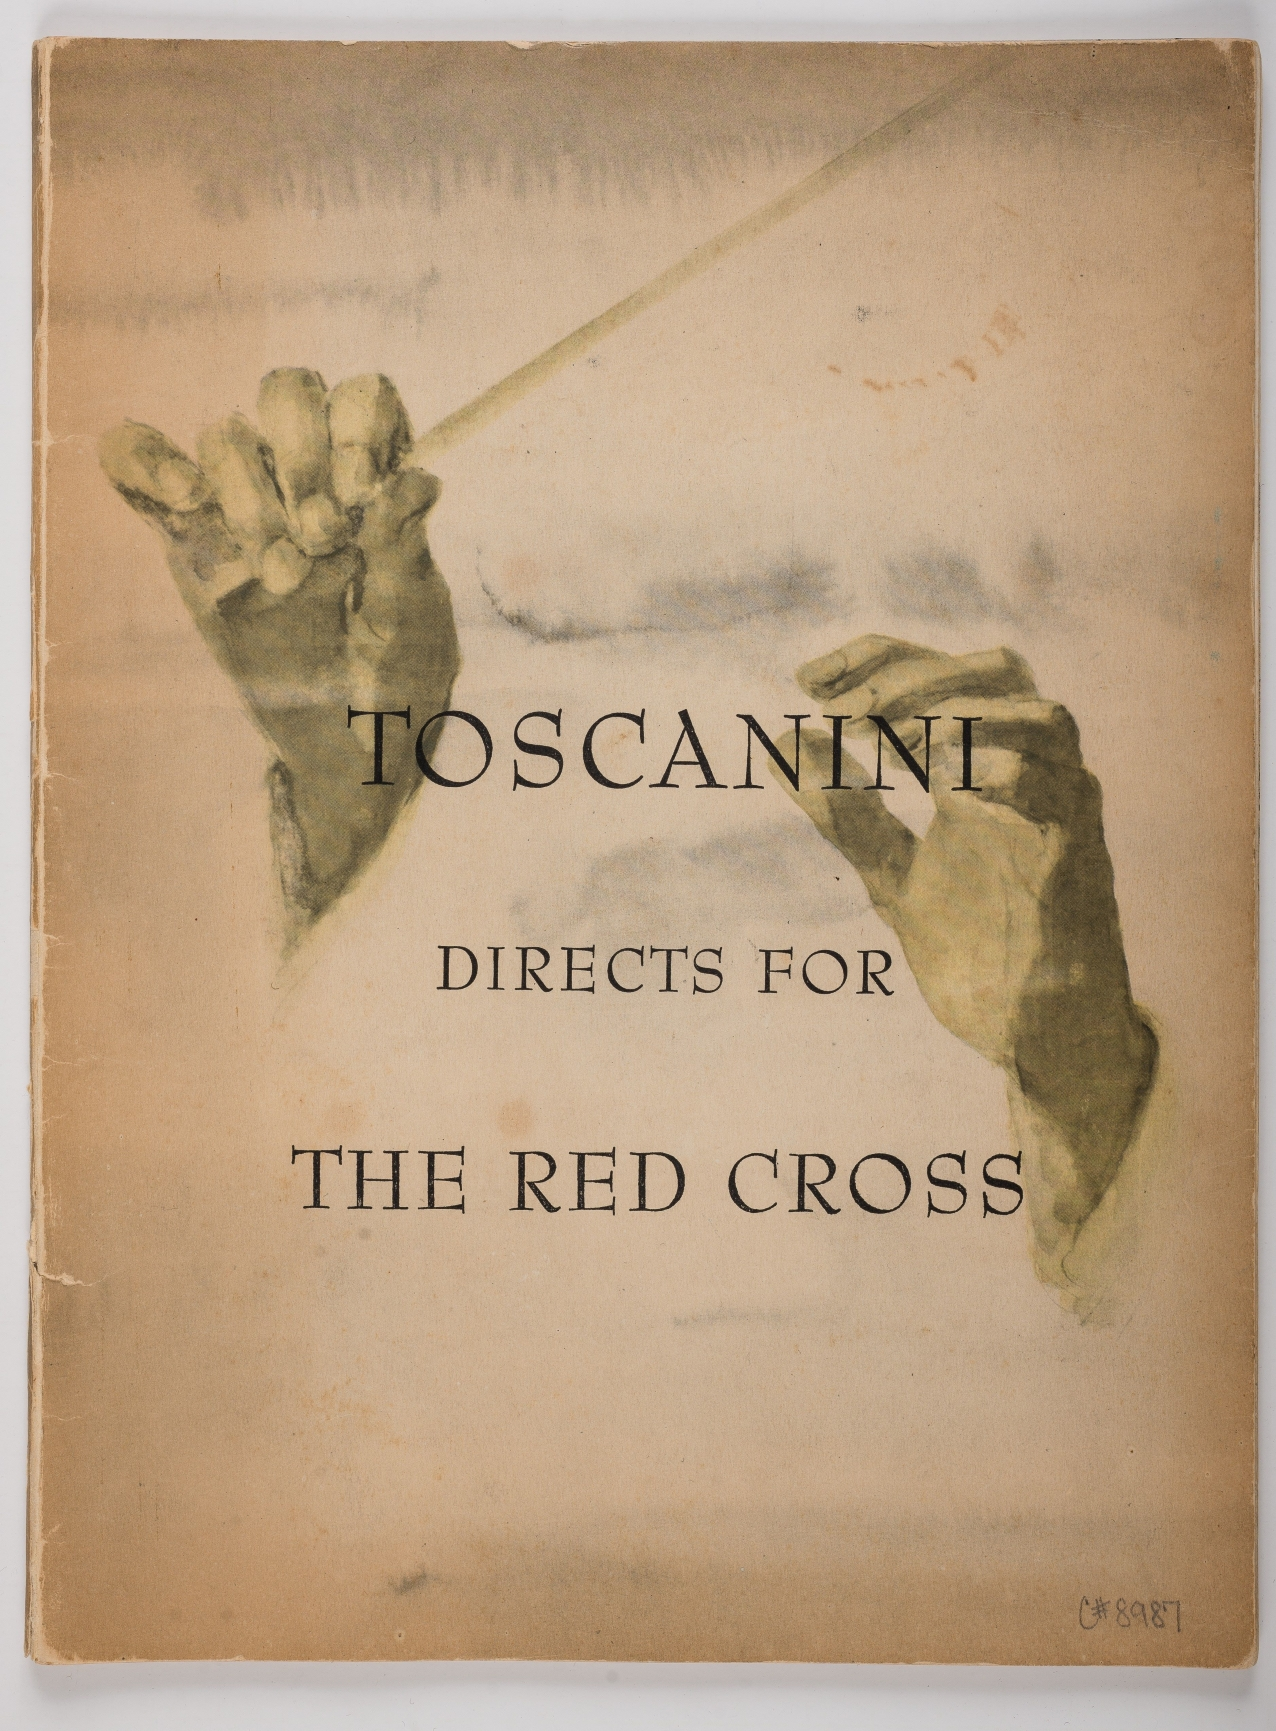 "Program cover illustration of Arturo Toscanini's hands conducting. Text printed ontop of the hands says ""Toscanini directs for the Red Cross""."